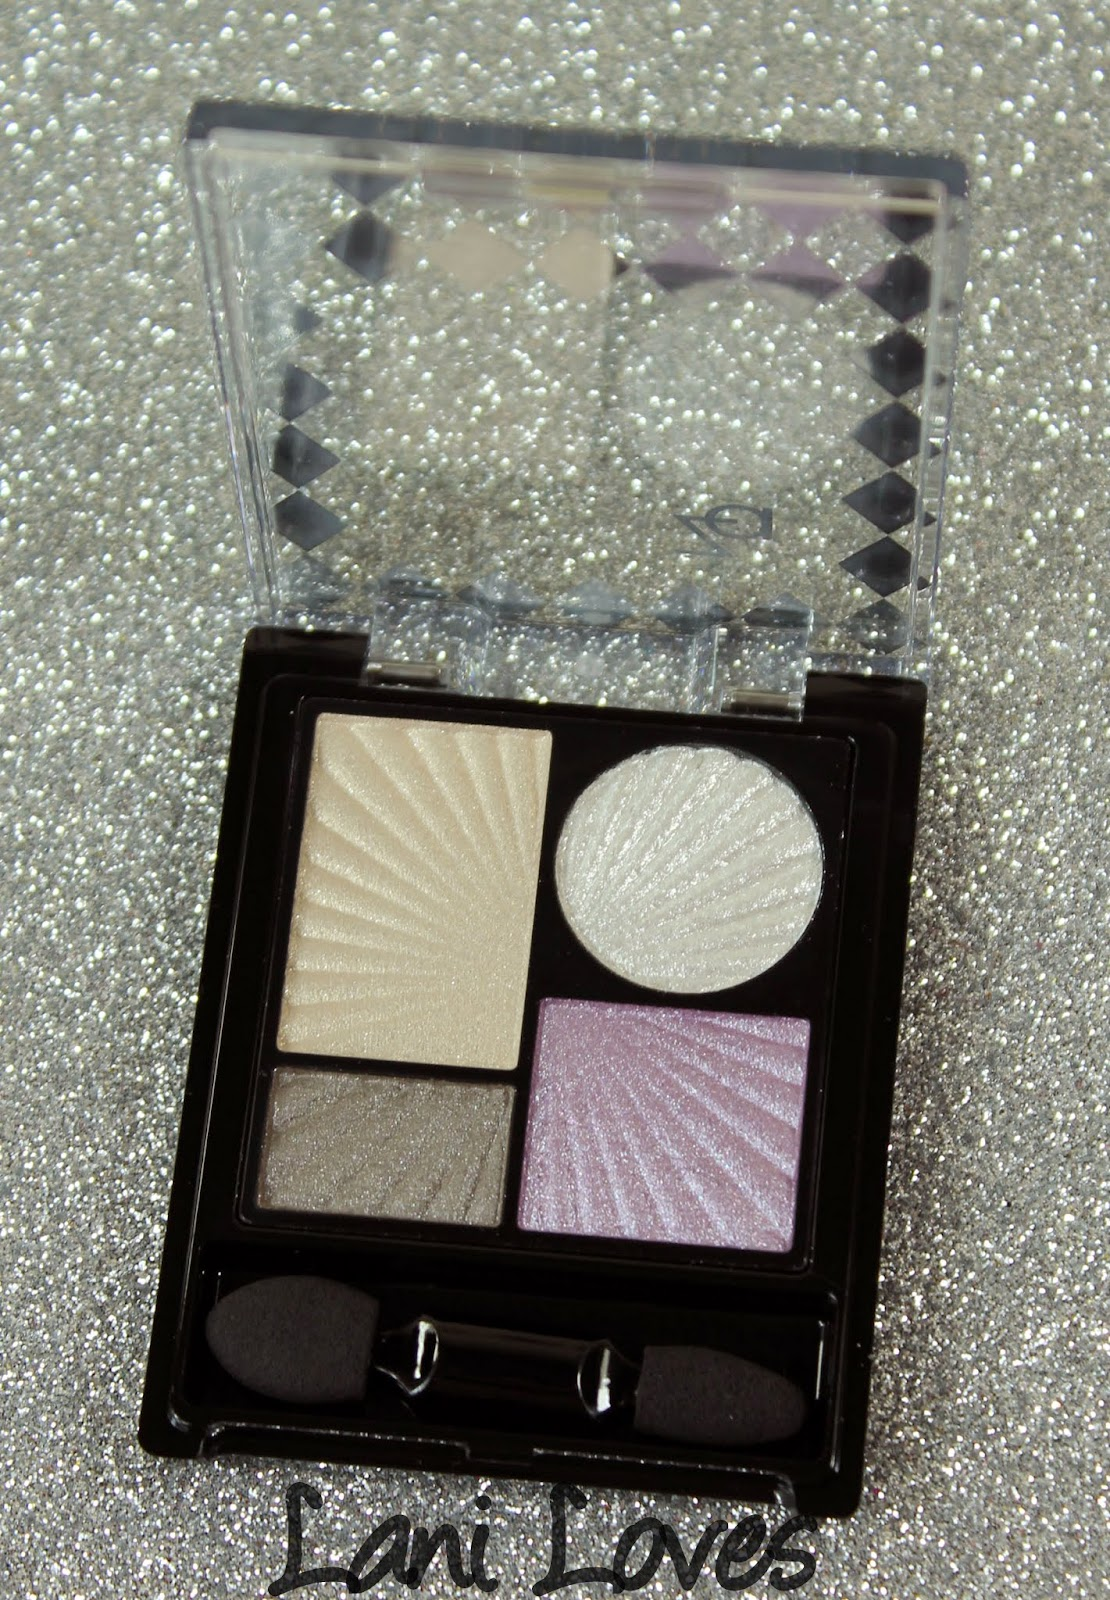 ZA Impact-Full Eyes Groovy Limited Edition Pure Silver eyeshadow palette